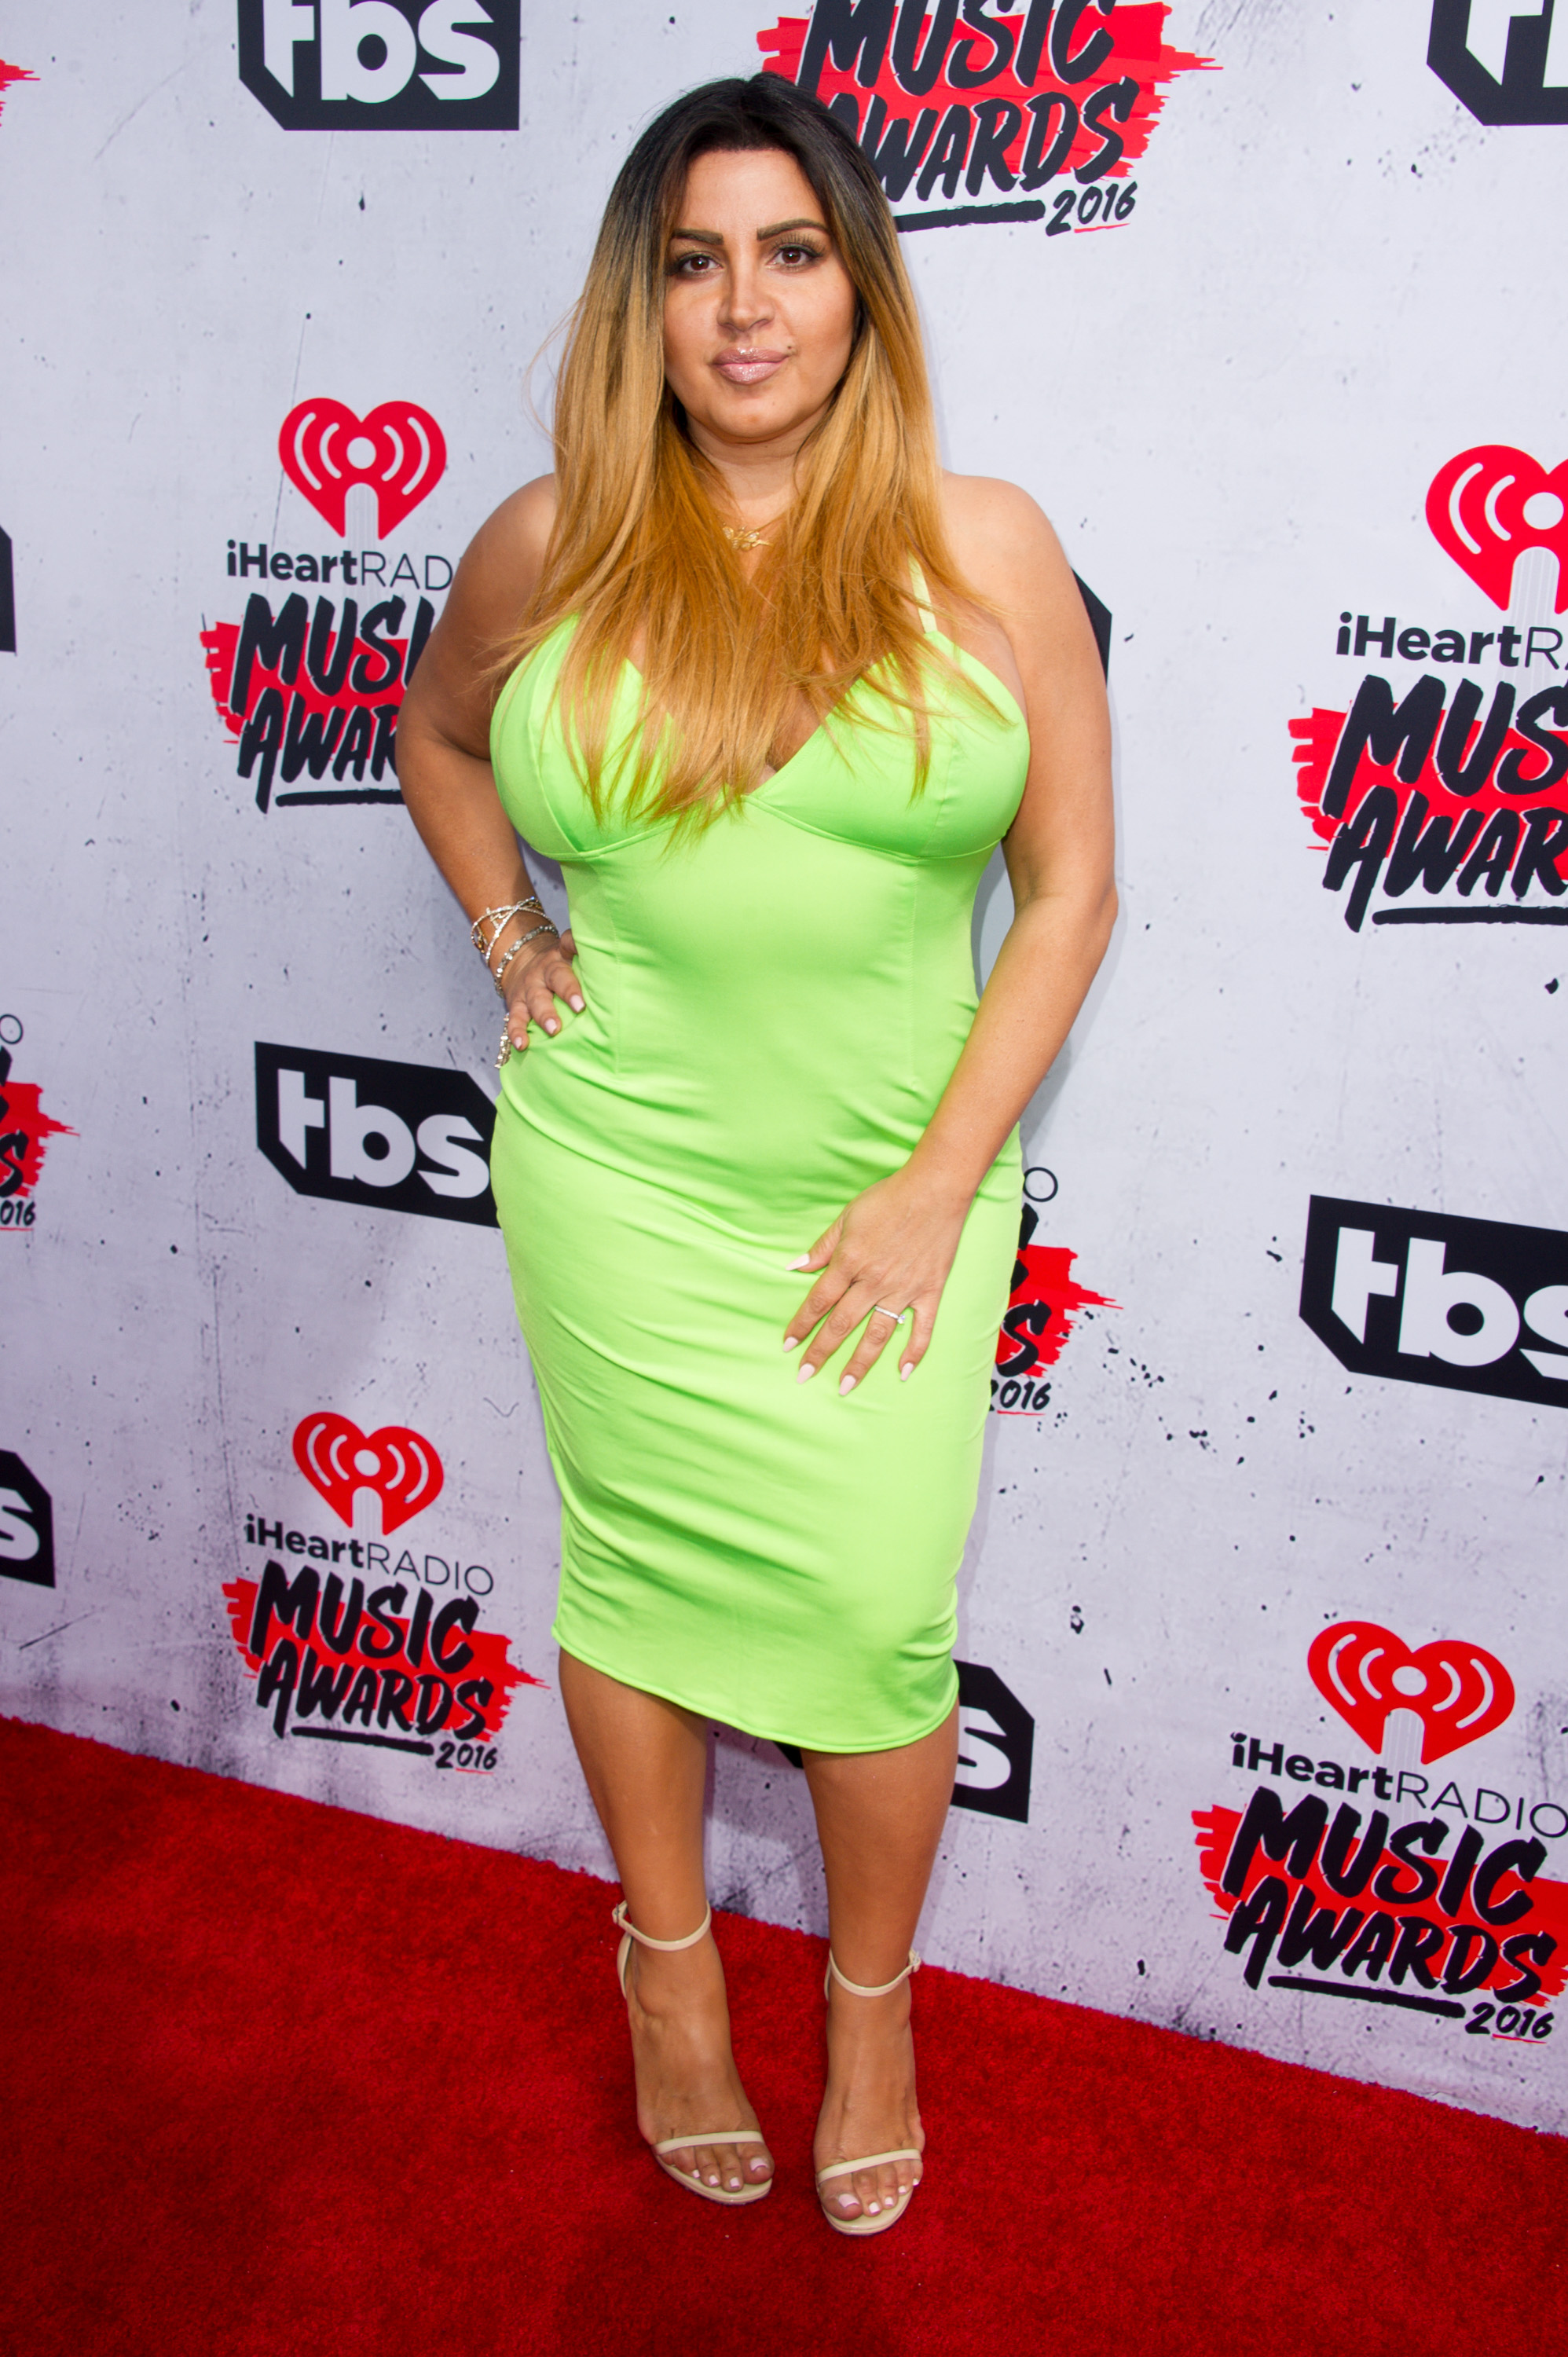 INGLEWOOD, CALIFORNIA - APRIL 03: TV personality Mercedes Javid arrives at the iHeartRadio Music Awards at The Forum on April 3, 2016 in Inglewood, California. (Photo by Allen Berezovsky/WireImage)